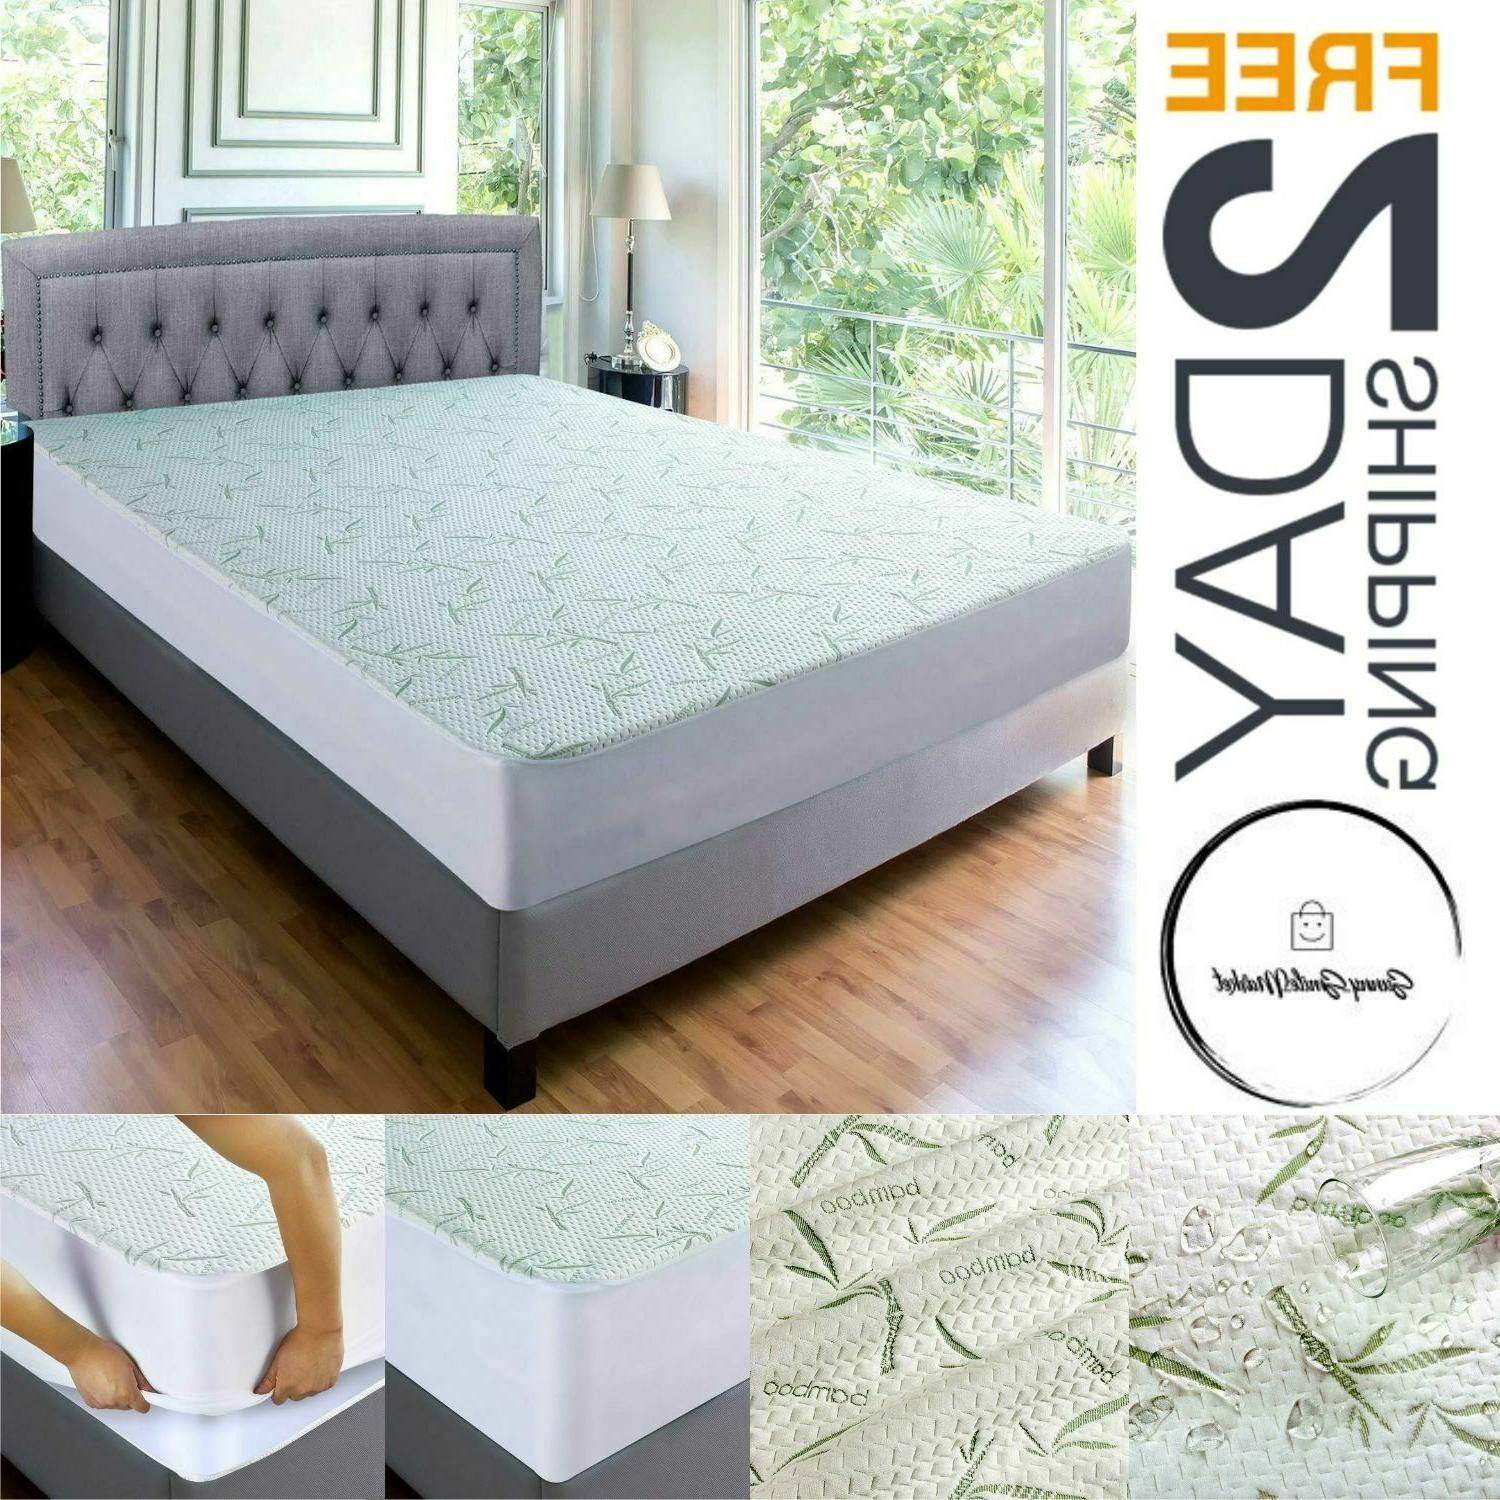 Waterproof Mattress Protector BAMBOO Soft Hypoallergenic Fit